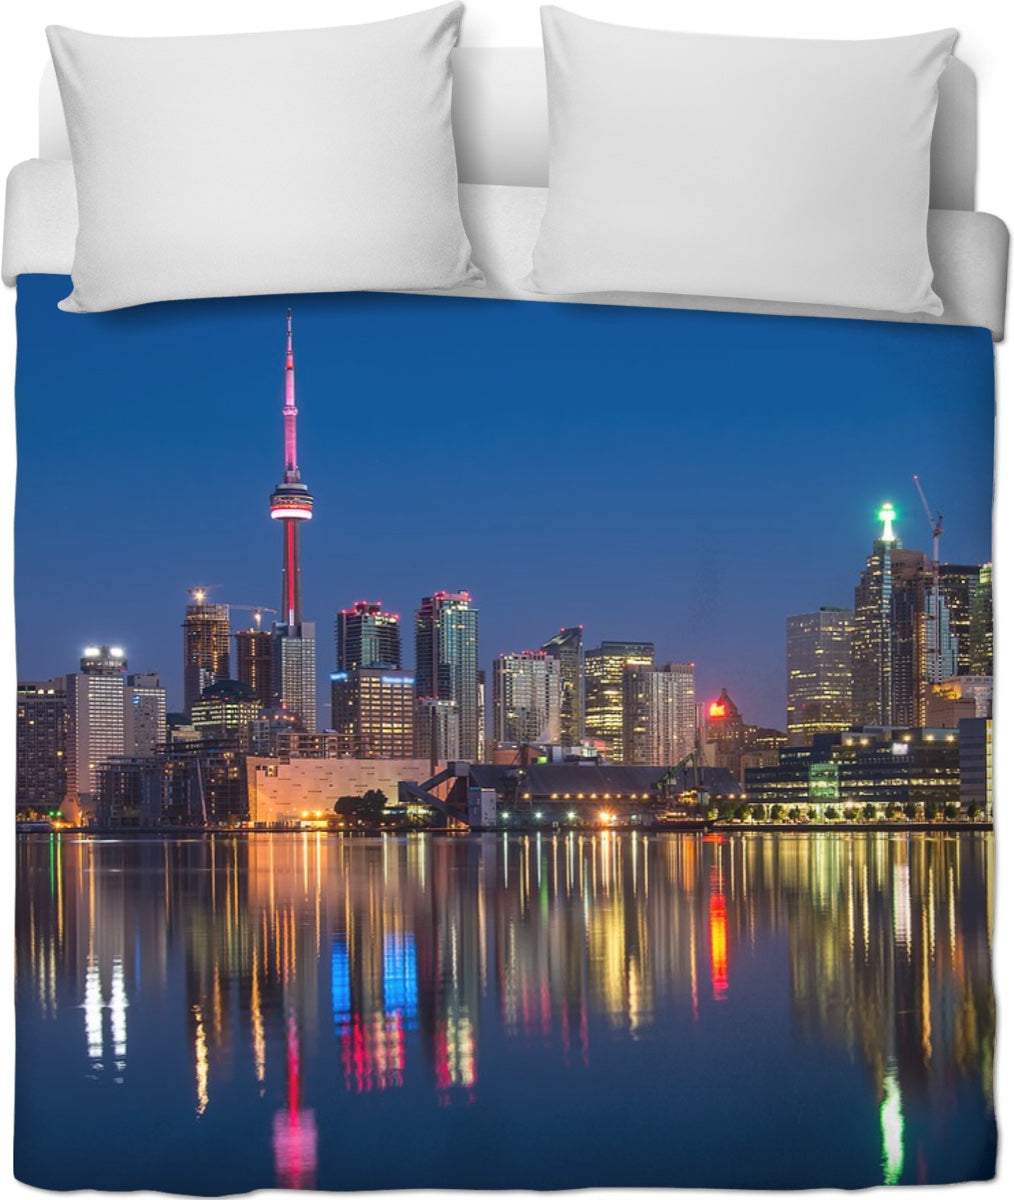 City Lights At Night Duvet Cover